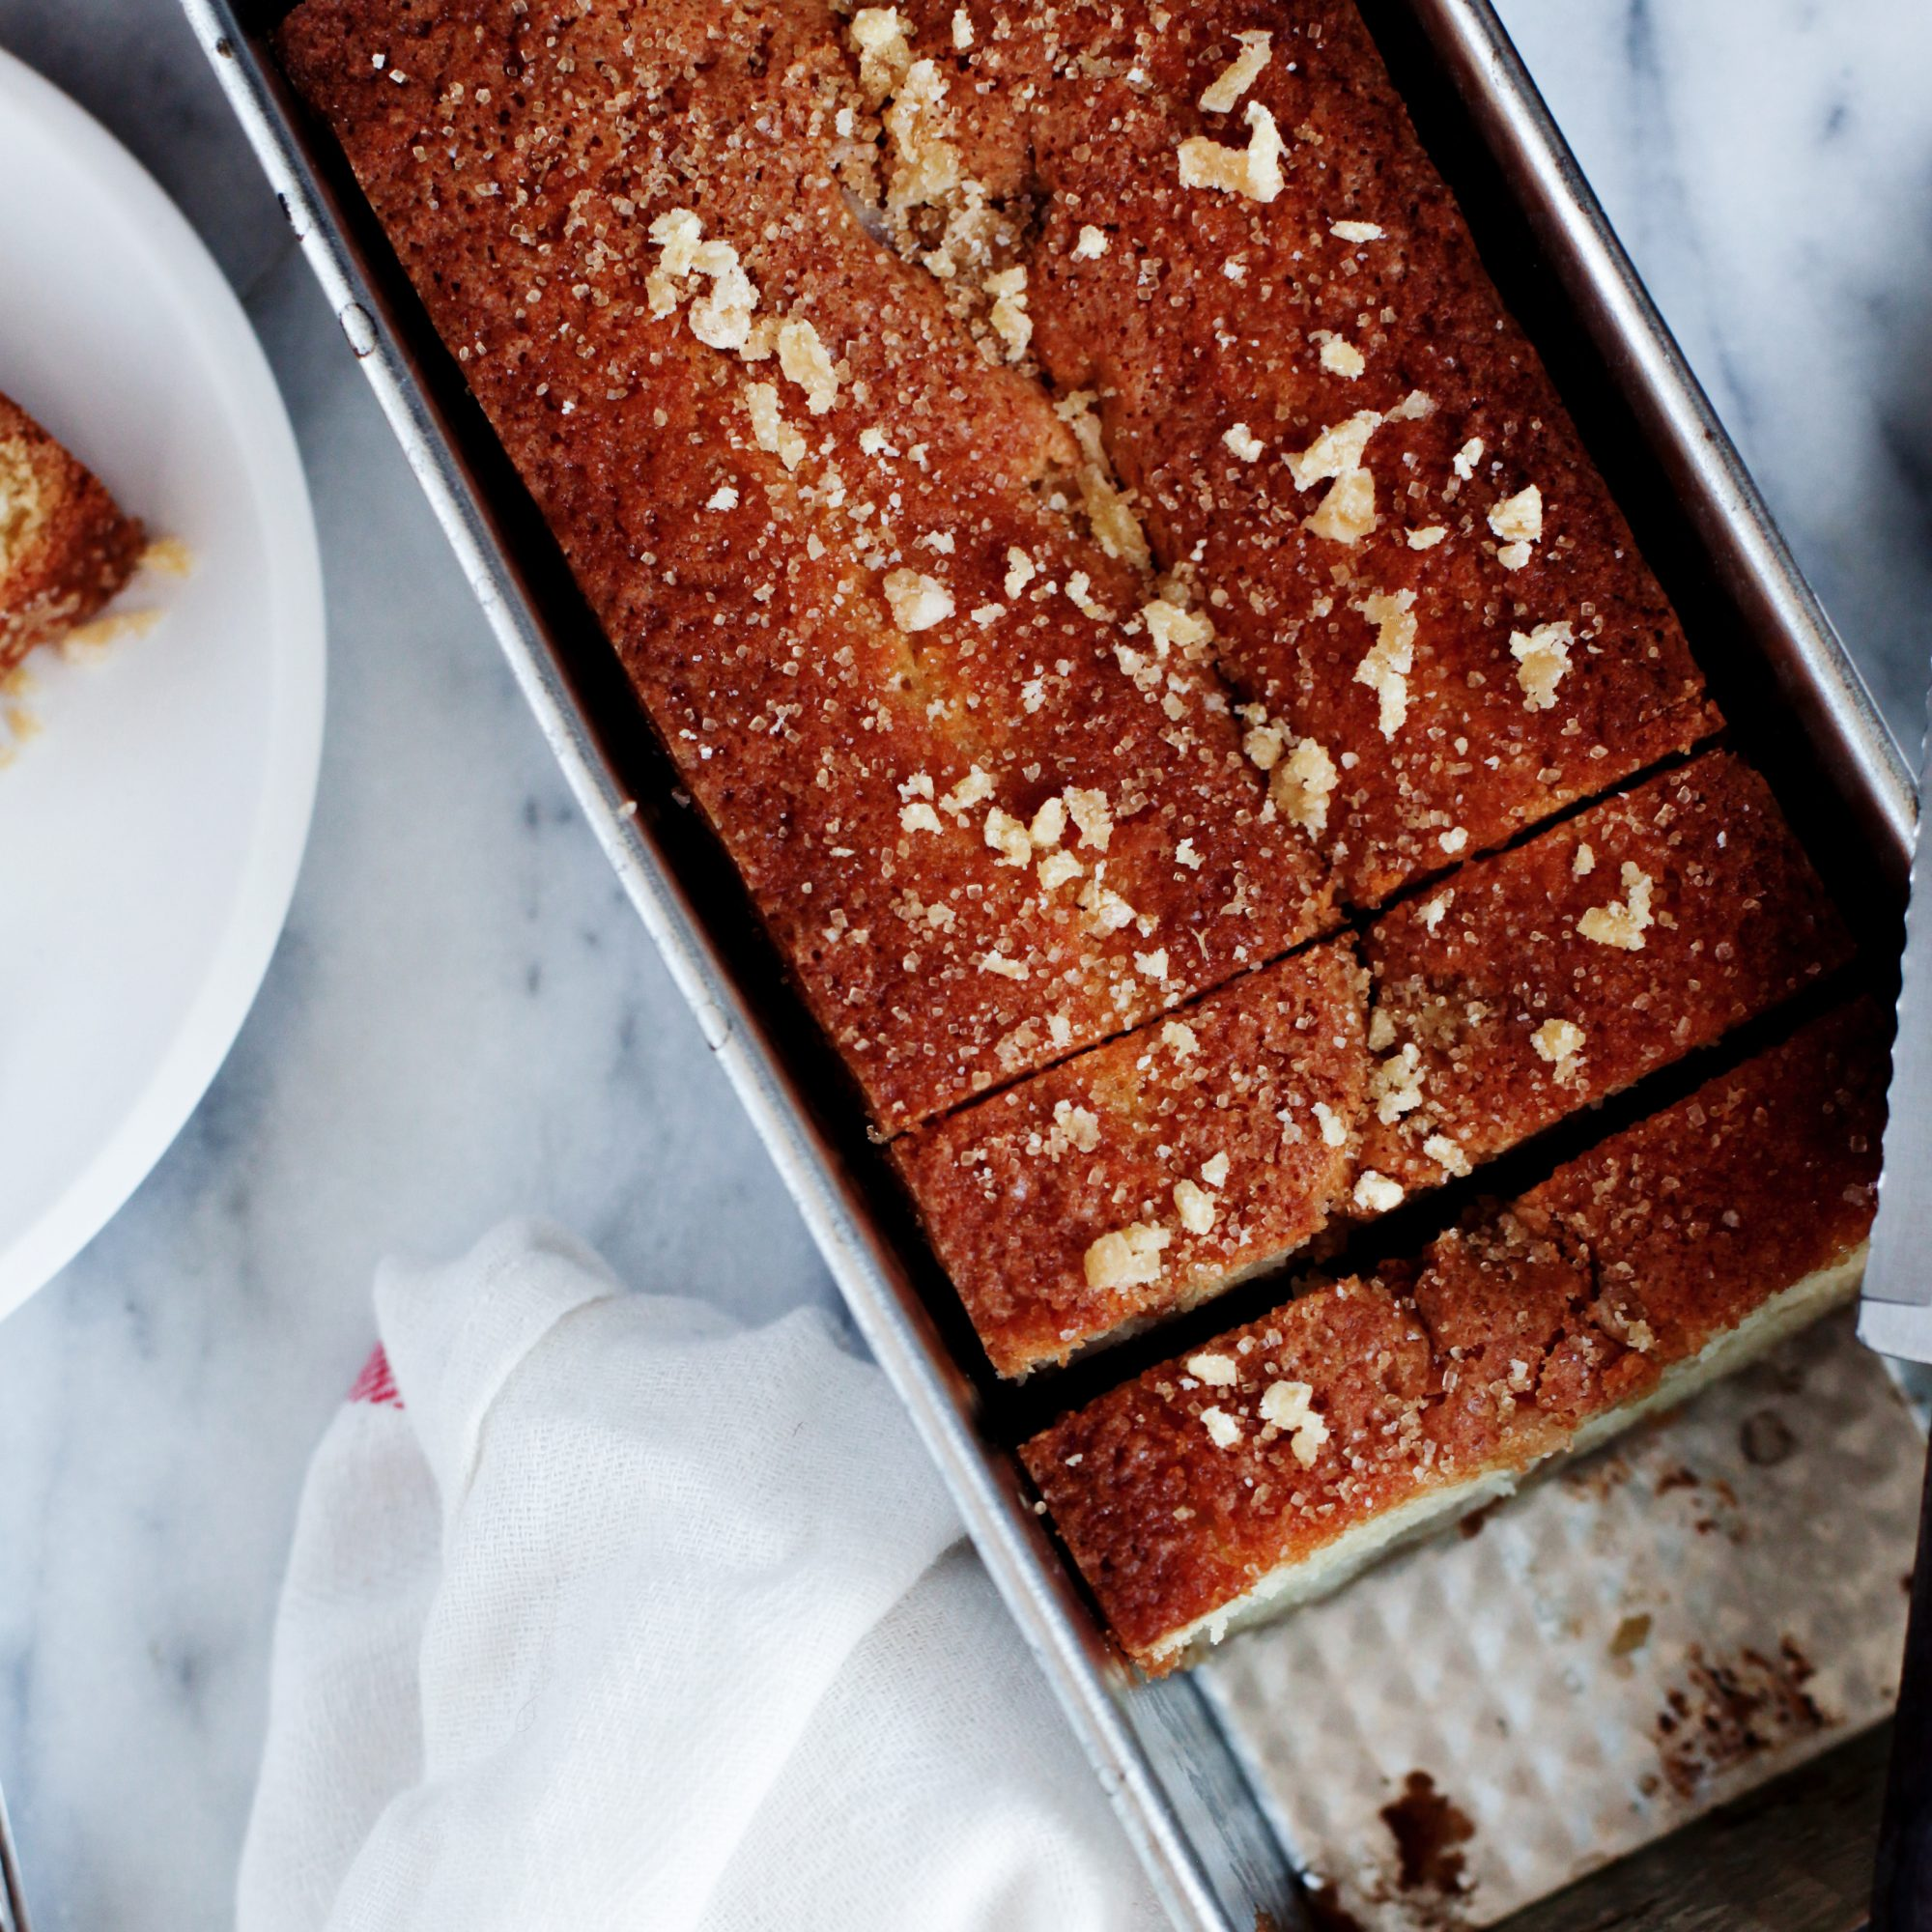 original-2013-r-gingerbread-pear-loaf-cake.jpg